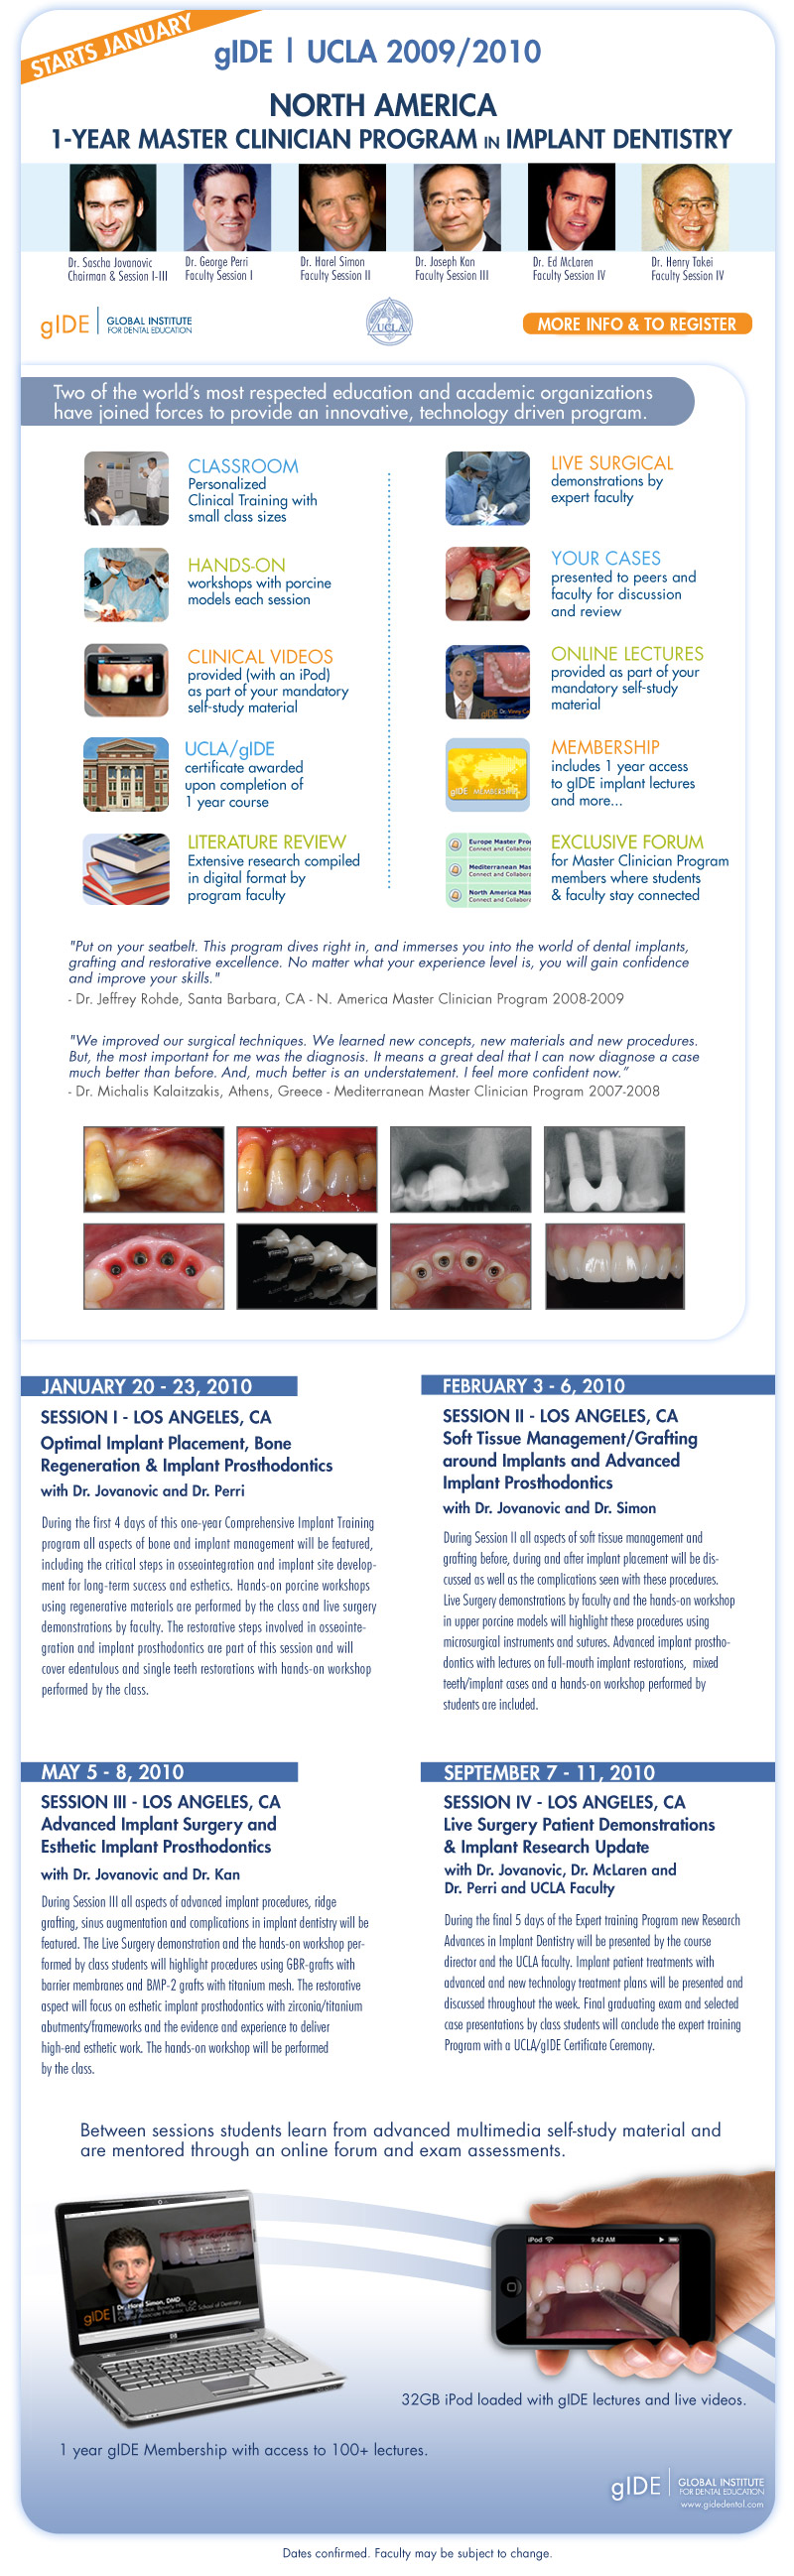 gIDE 1-Year Master Clinician Program in Implant Dentistry